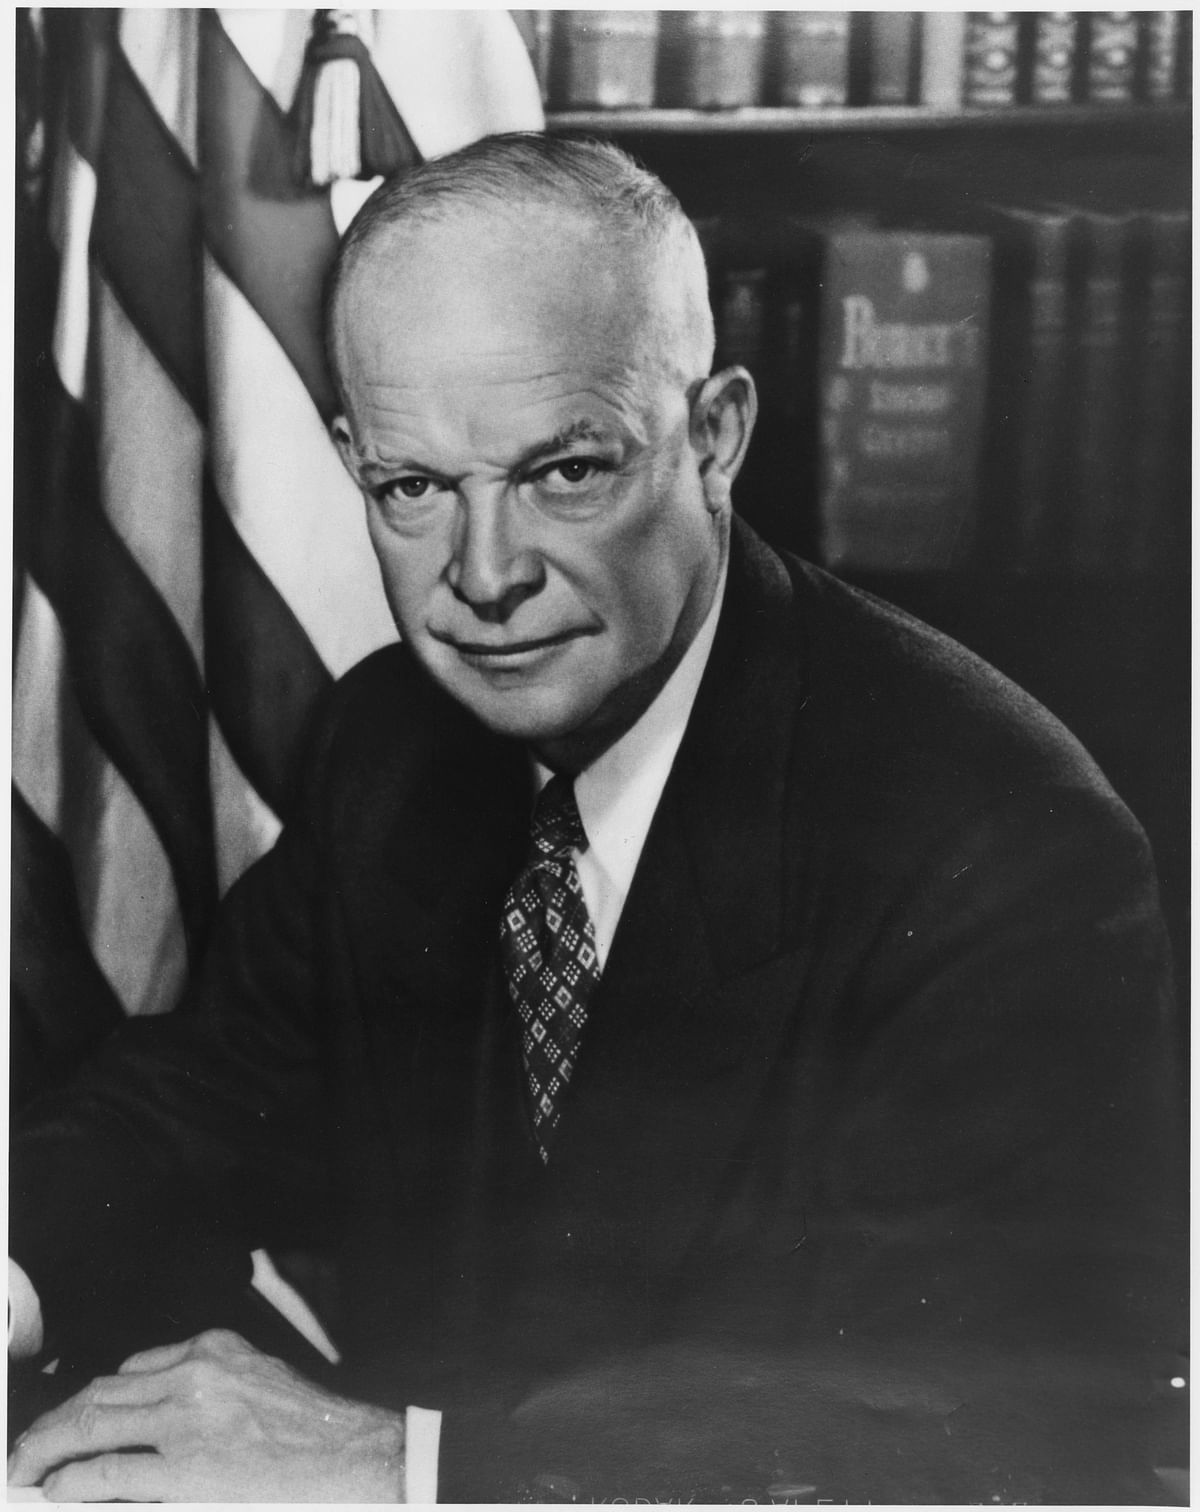 Dwight D Eisenhower, 34th President of the United States.